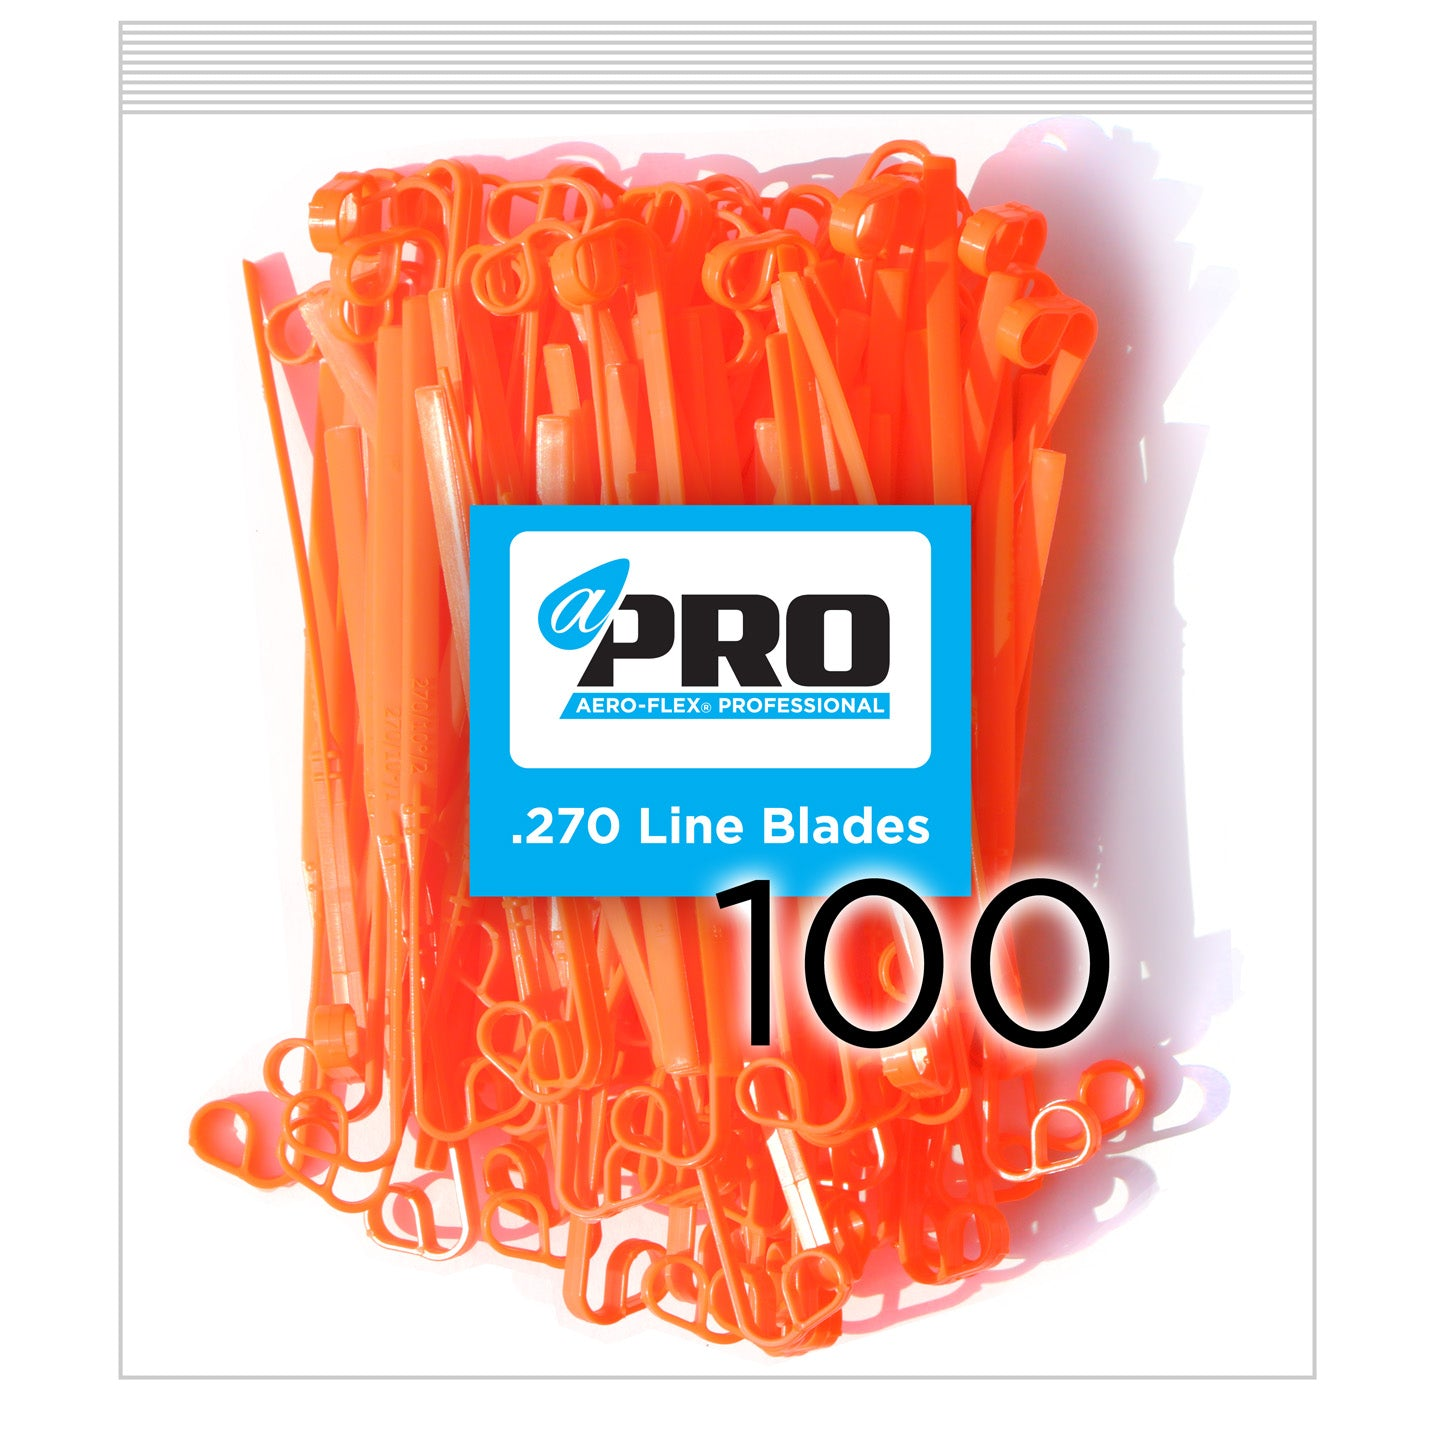 100 Pro .270 Line Blades - Orange (CW Sharp Side Leading)